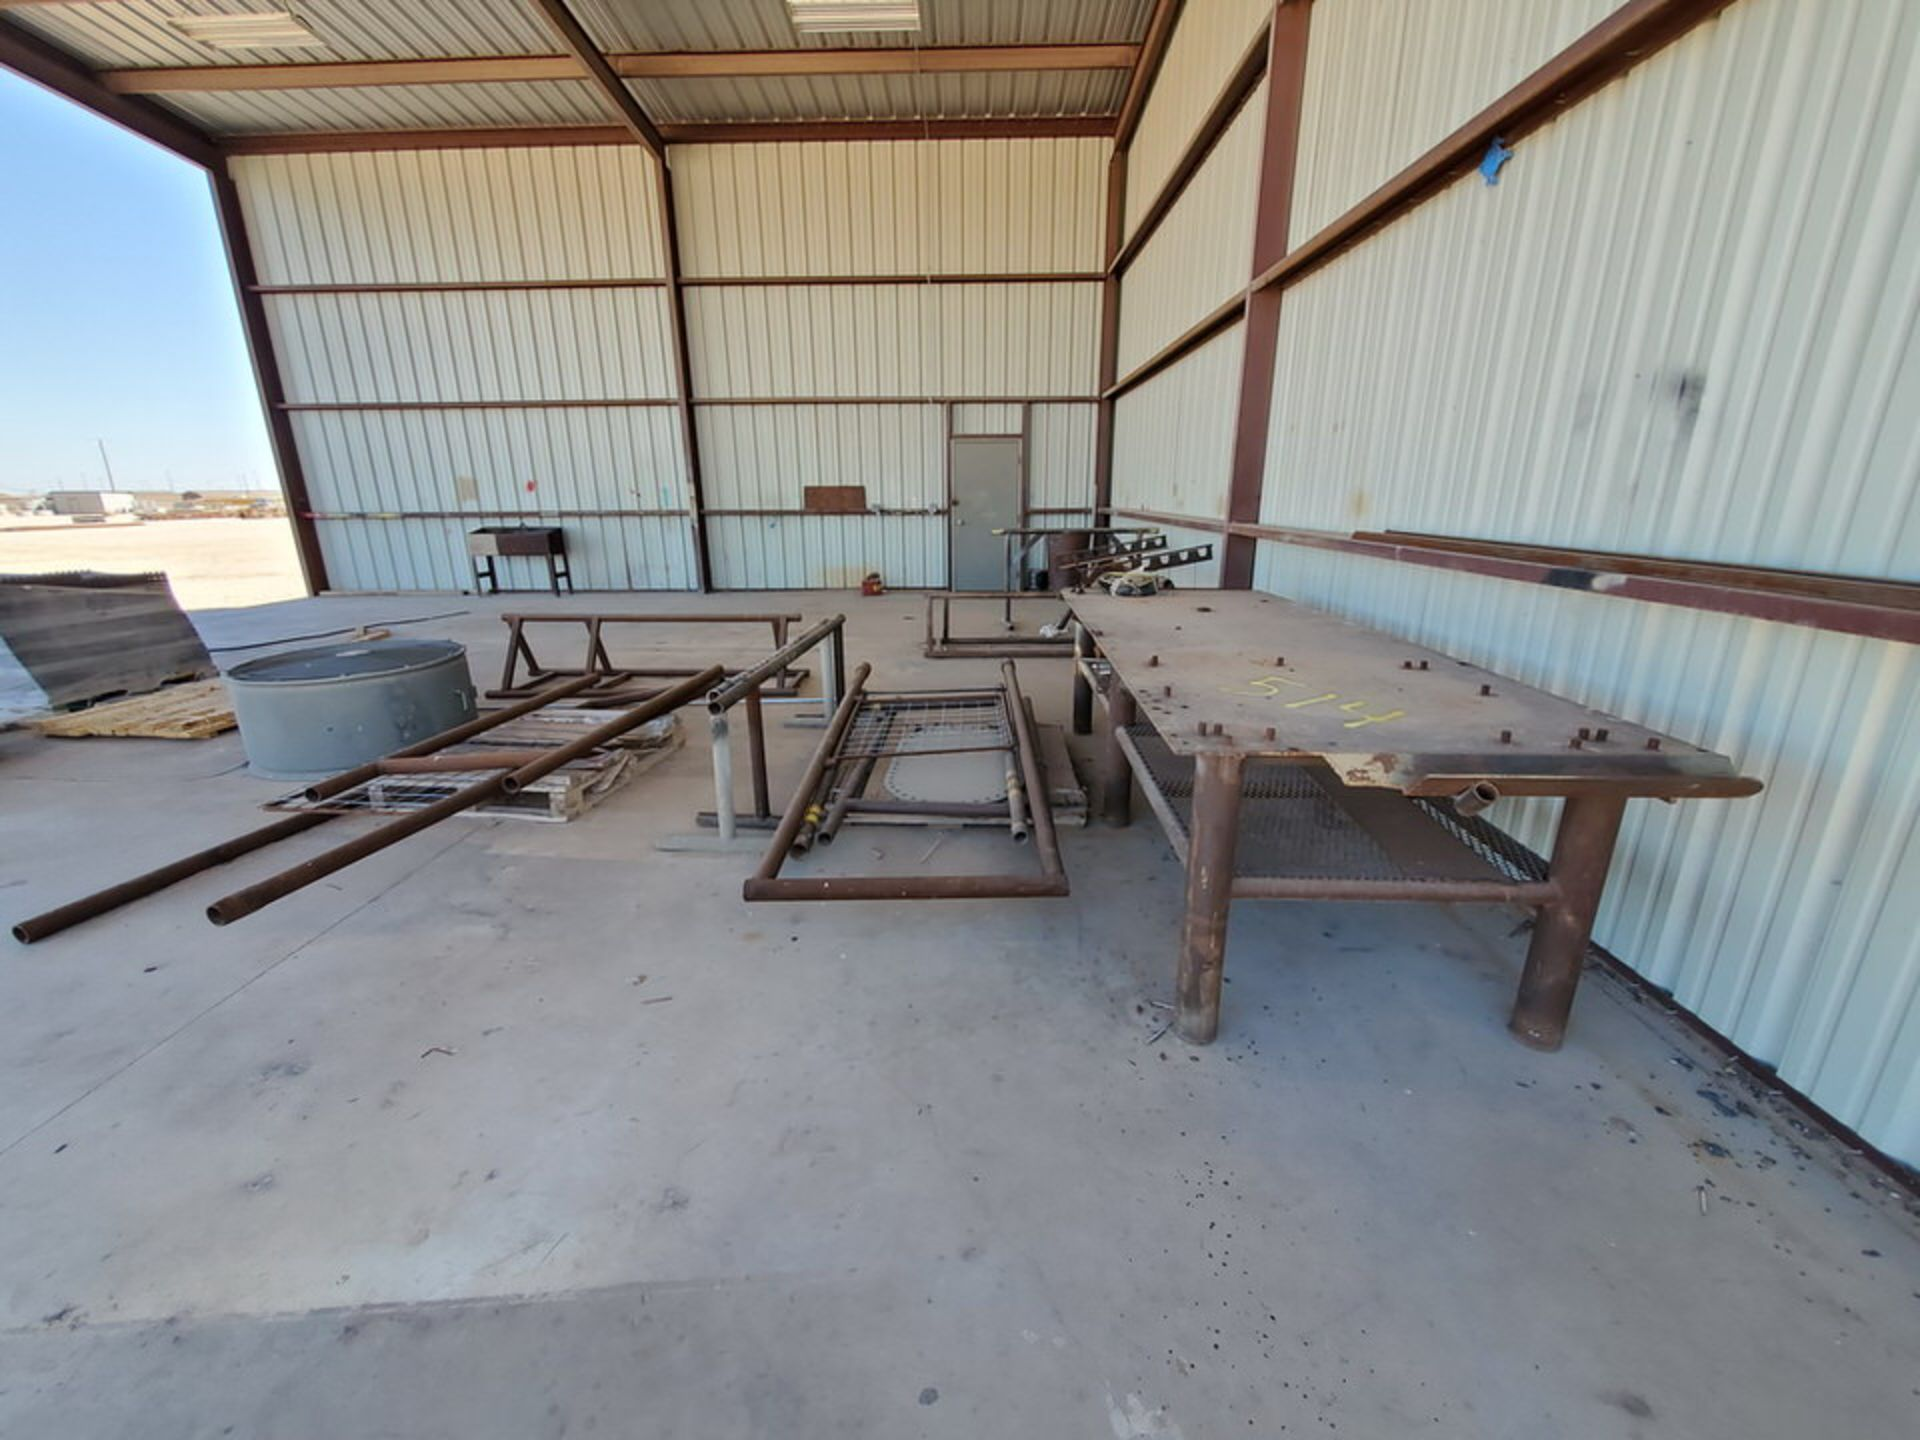 "Misc. Matl. To Include But Not Limited To: 42"" Drum Fan, Saw Horses, Welding Table, etc."